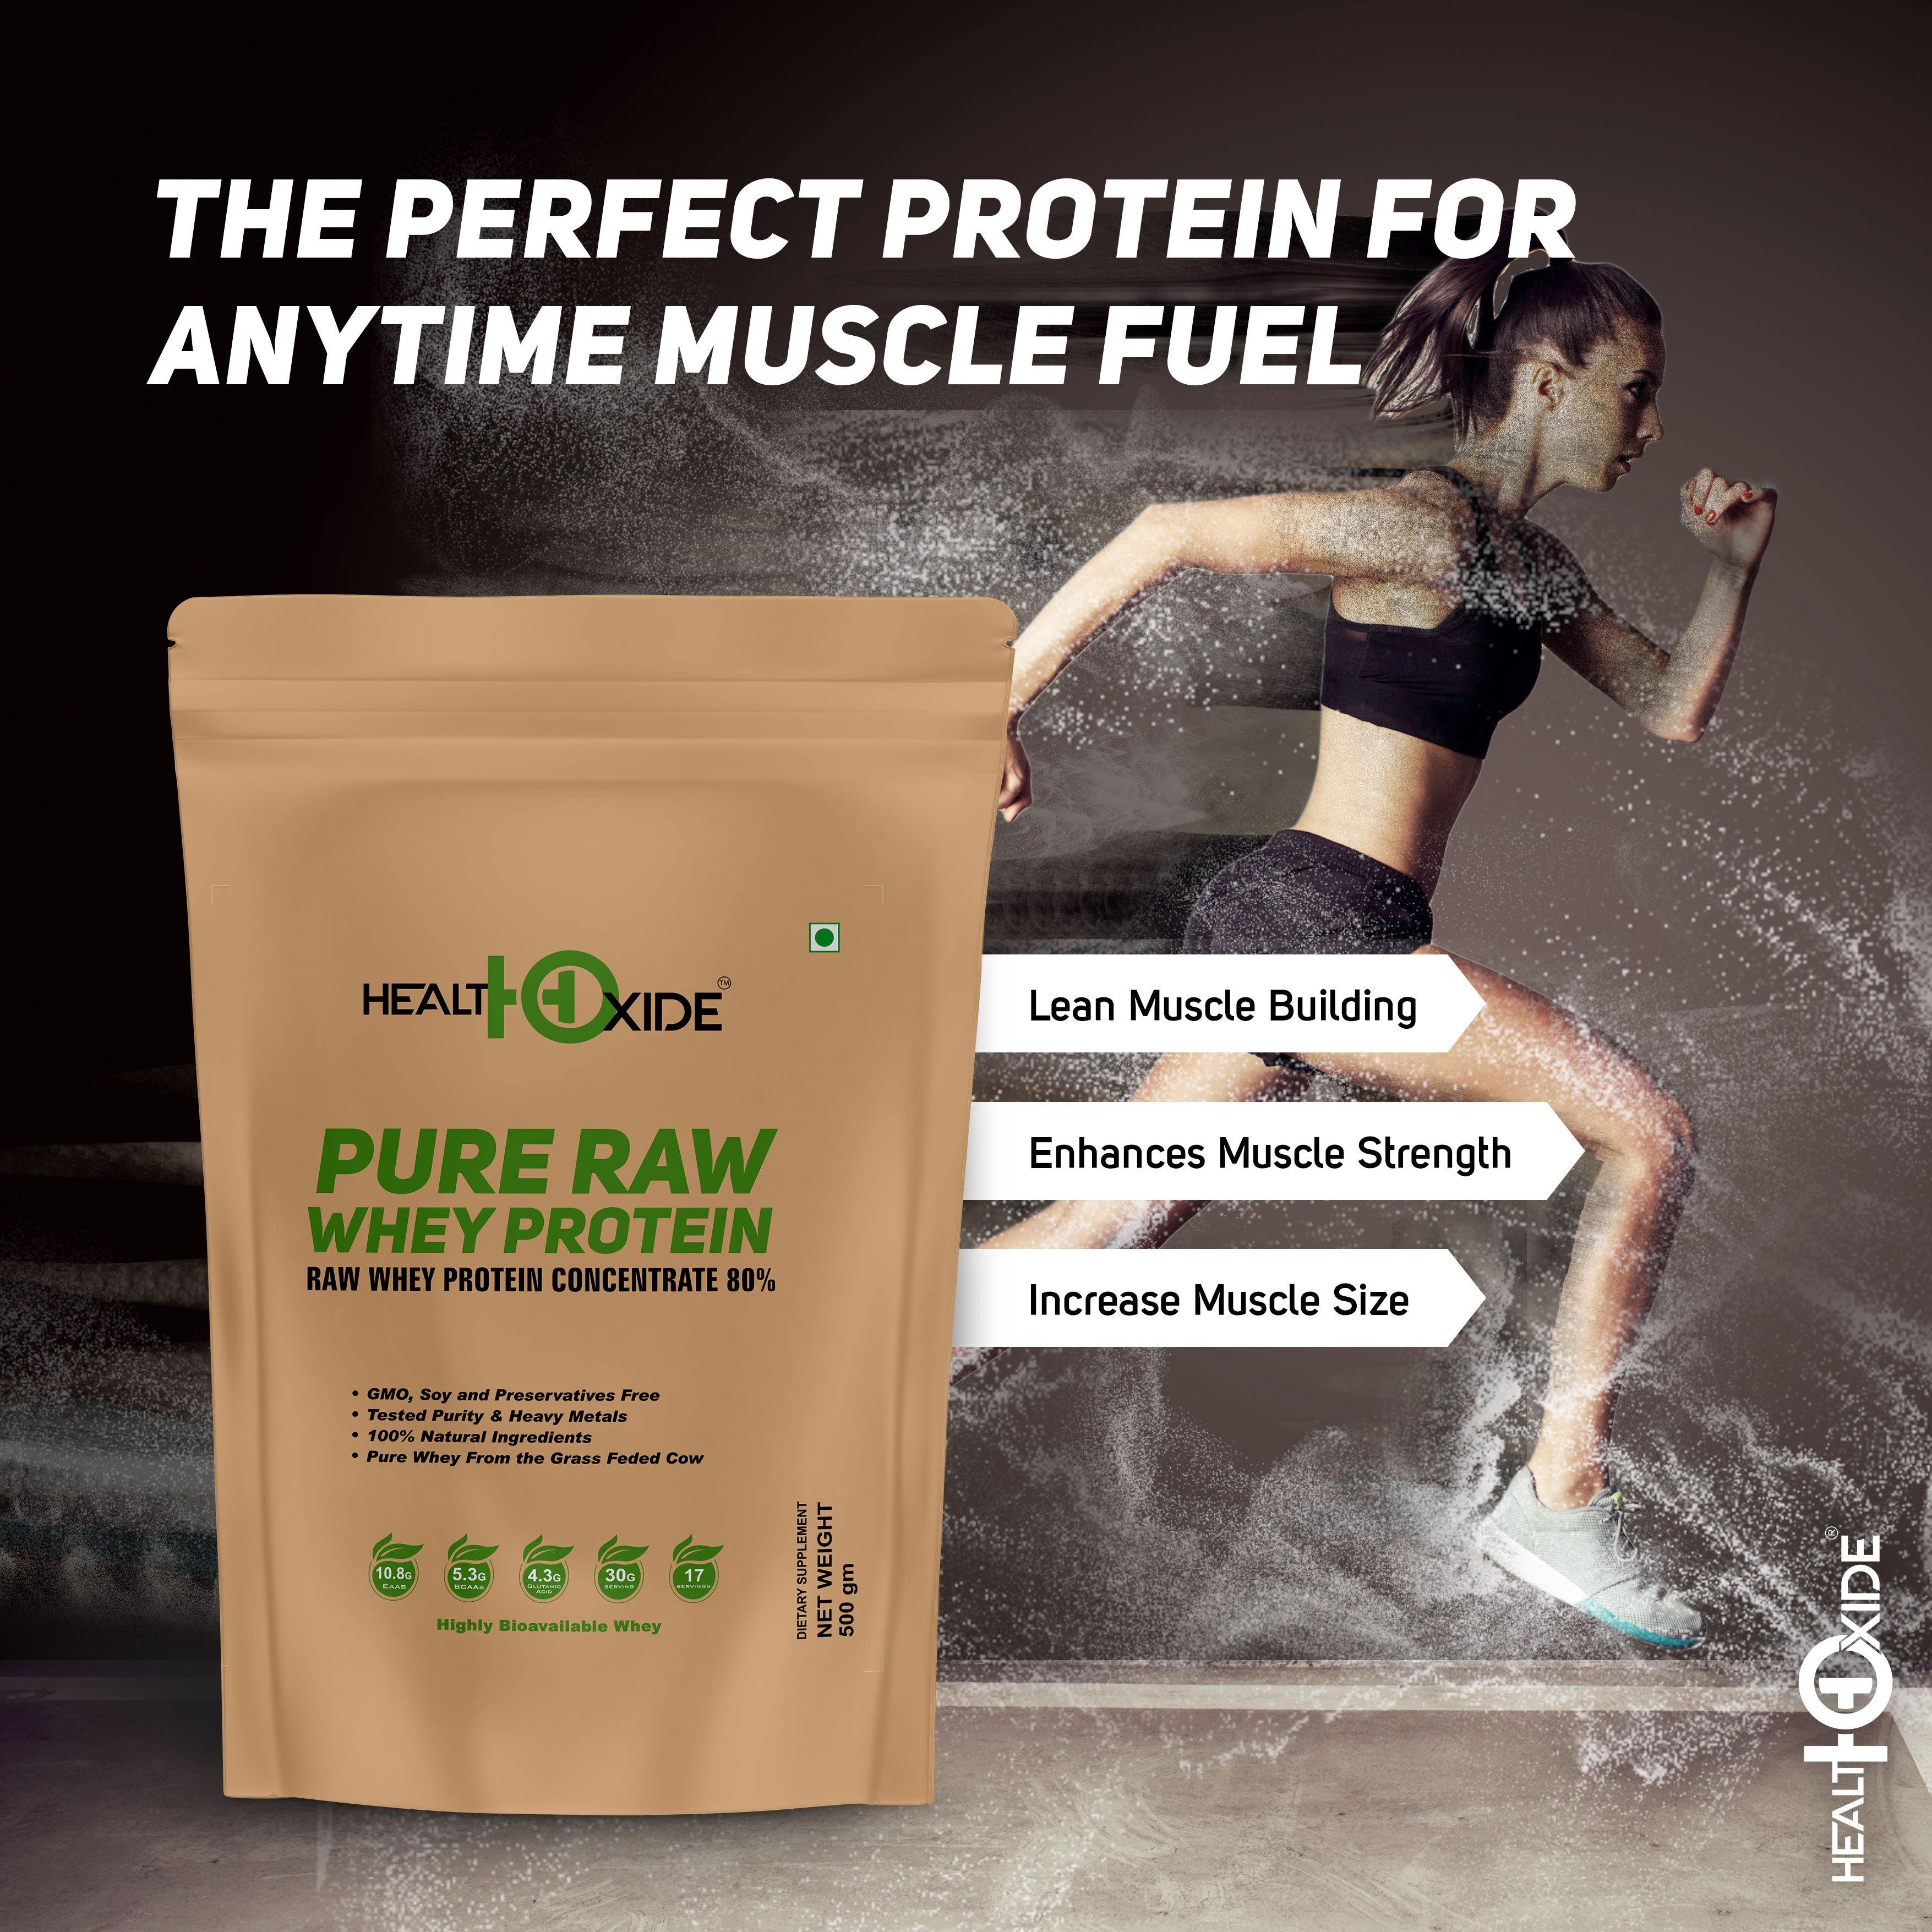 Pure Raw Whey Protein 80% - HealthOxide